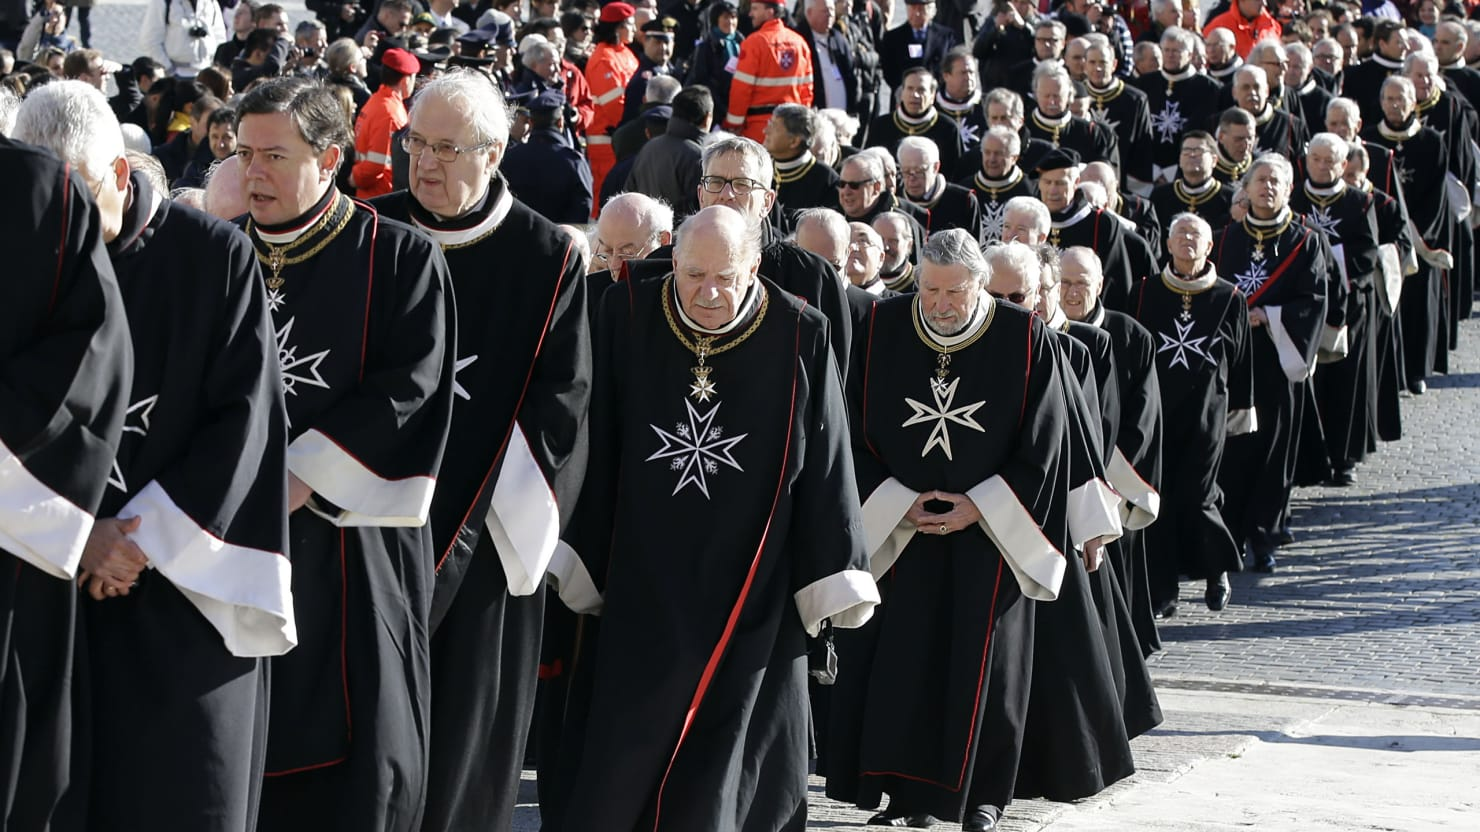 Knights Of Malta Celebrates 900th Birthday The Daily Beast